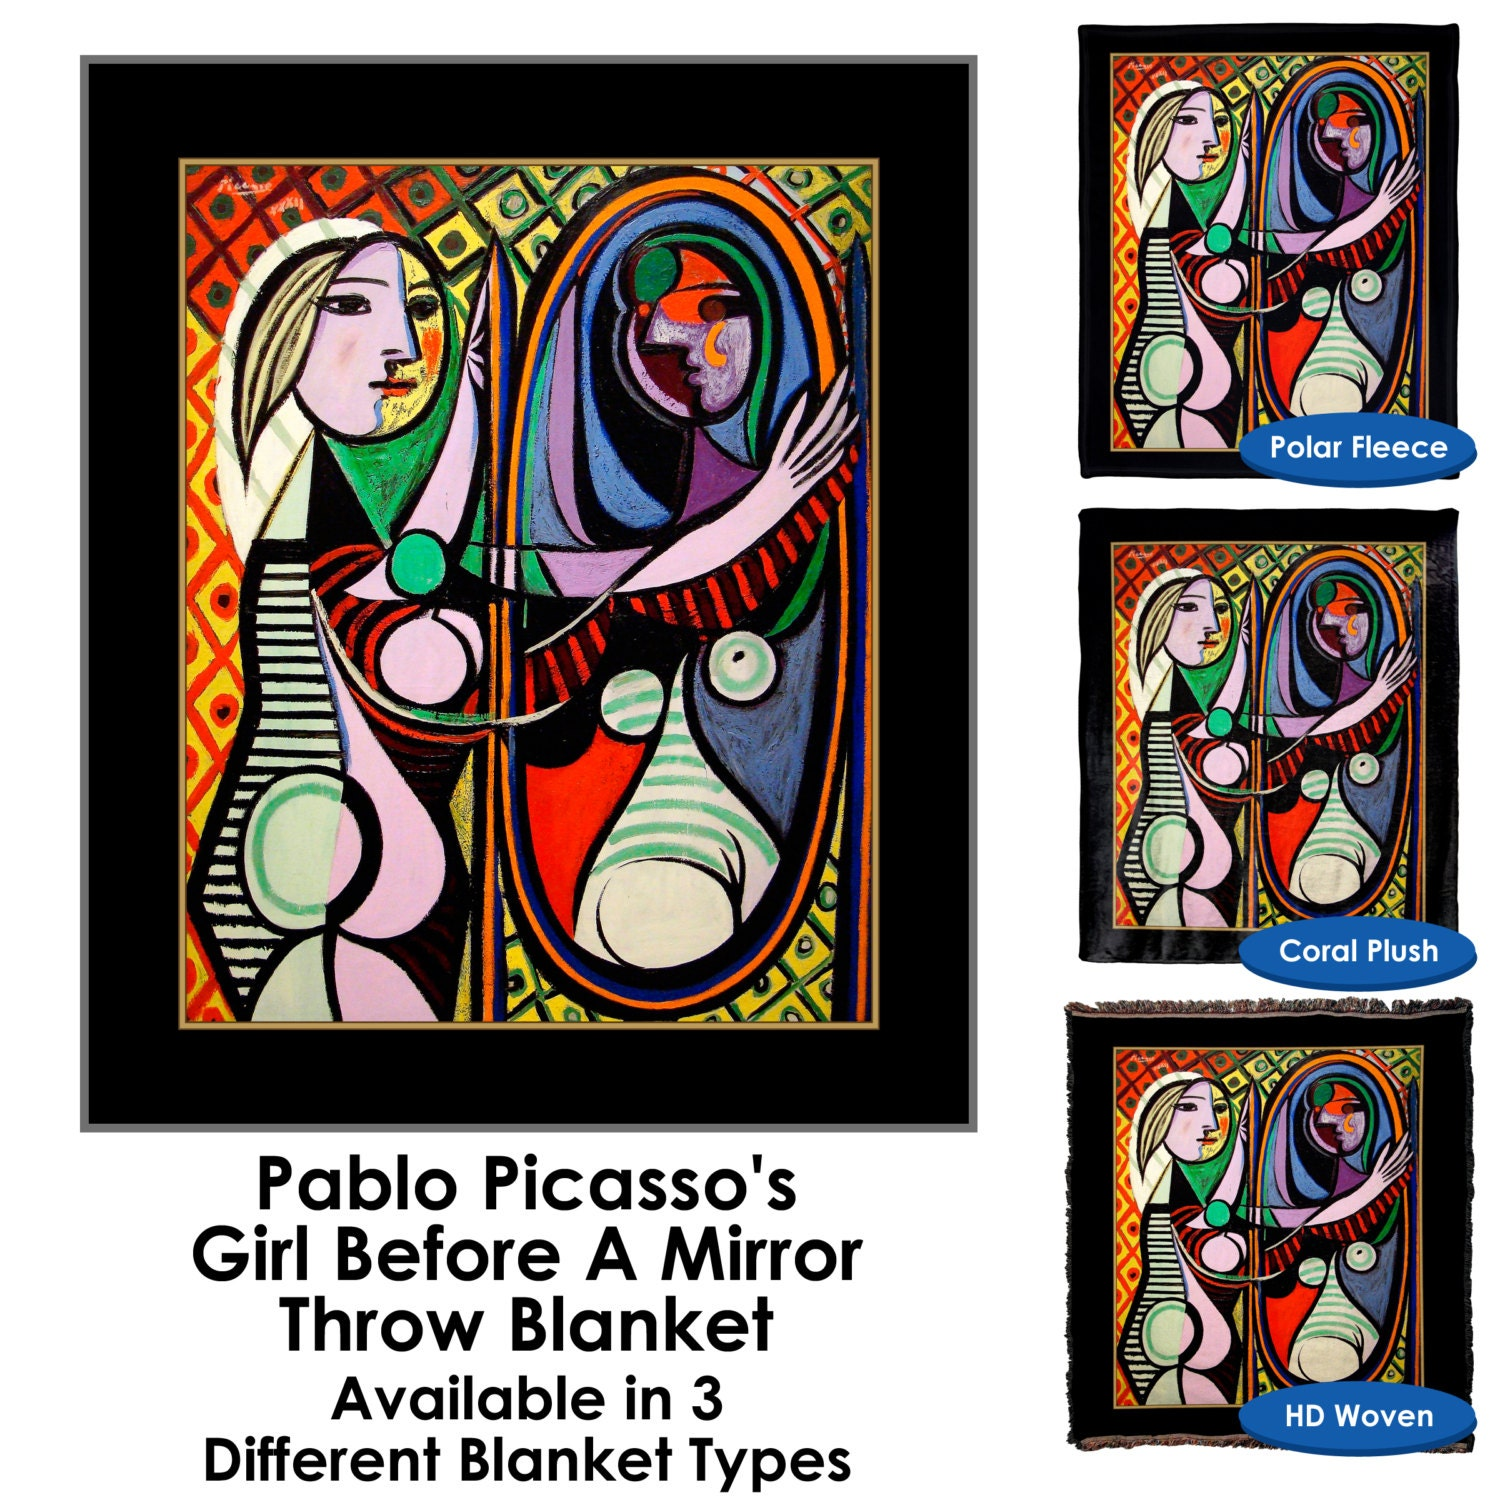 pablo picasso 39 s girl before a mirror throw blanket. Black Bedroom Furniture Sets. Home Design Ideas